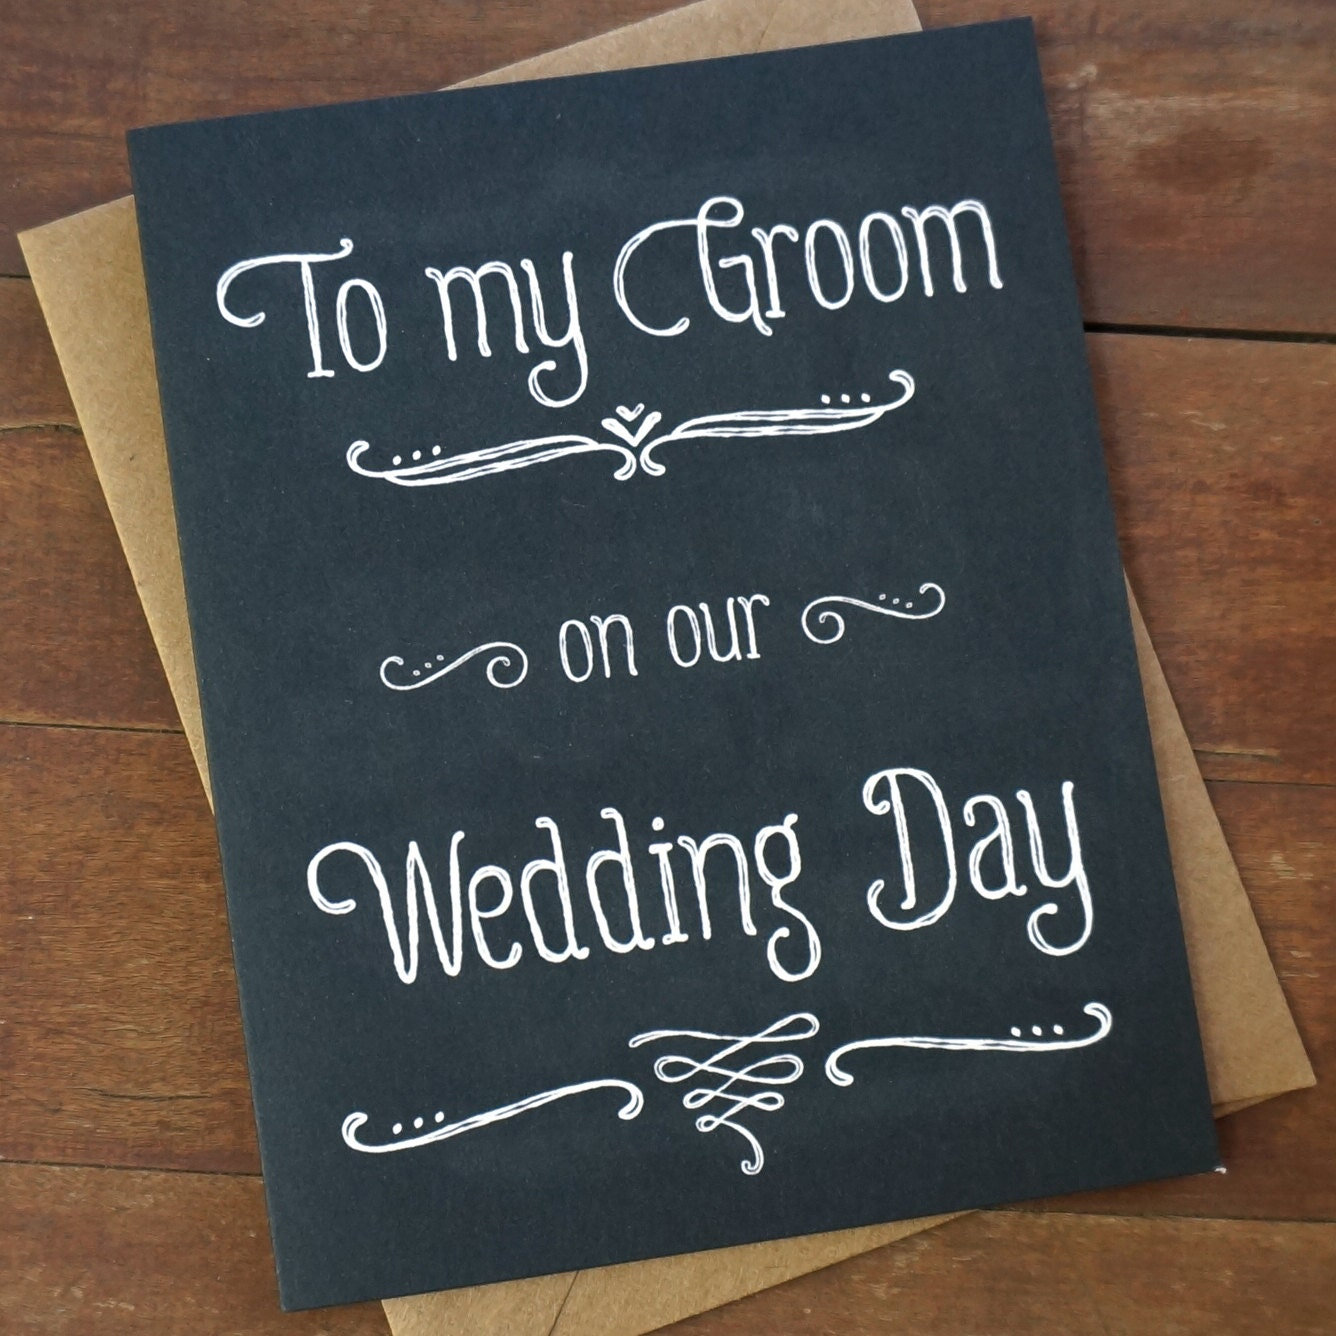 Groom Gift From Bride To Card My On Our Wedding